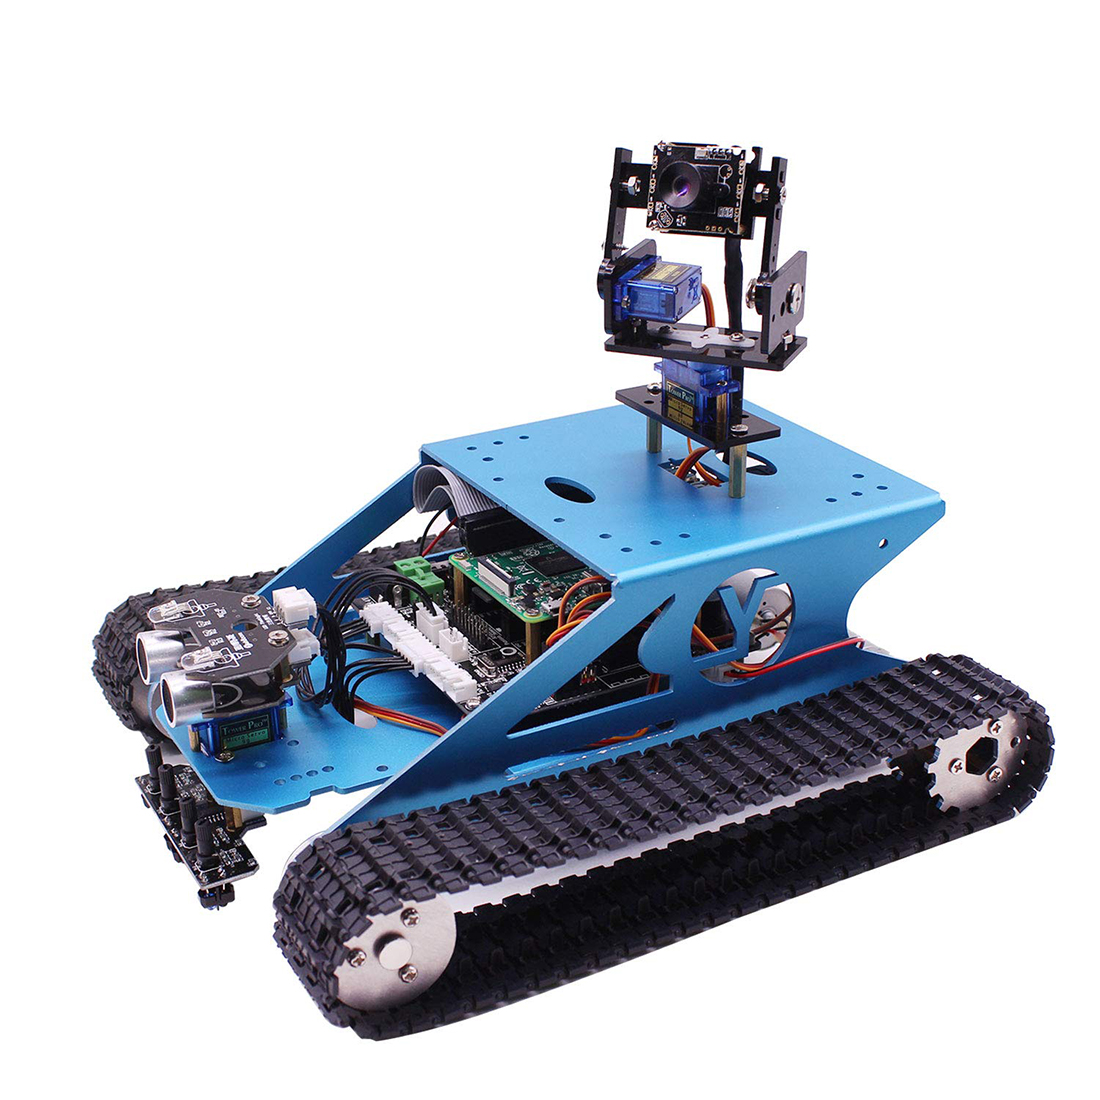 Tracked Tank Smart Robotic Kit Bluetooth Video Programming Electronic Toy DIY Self-balance Car Robot With Raspberry 4B(1/2/4G)